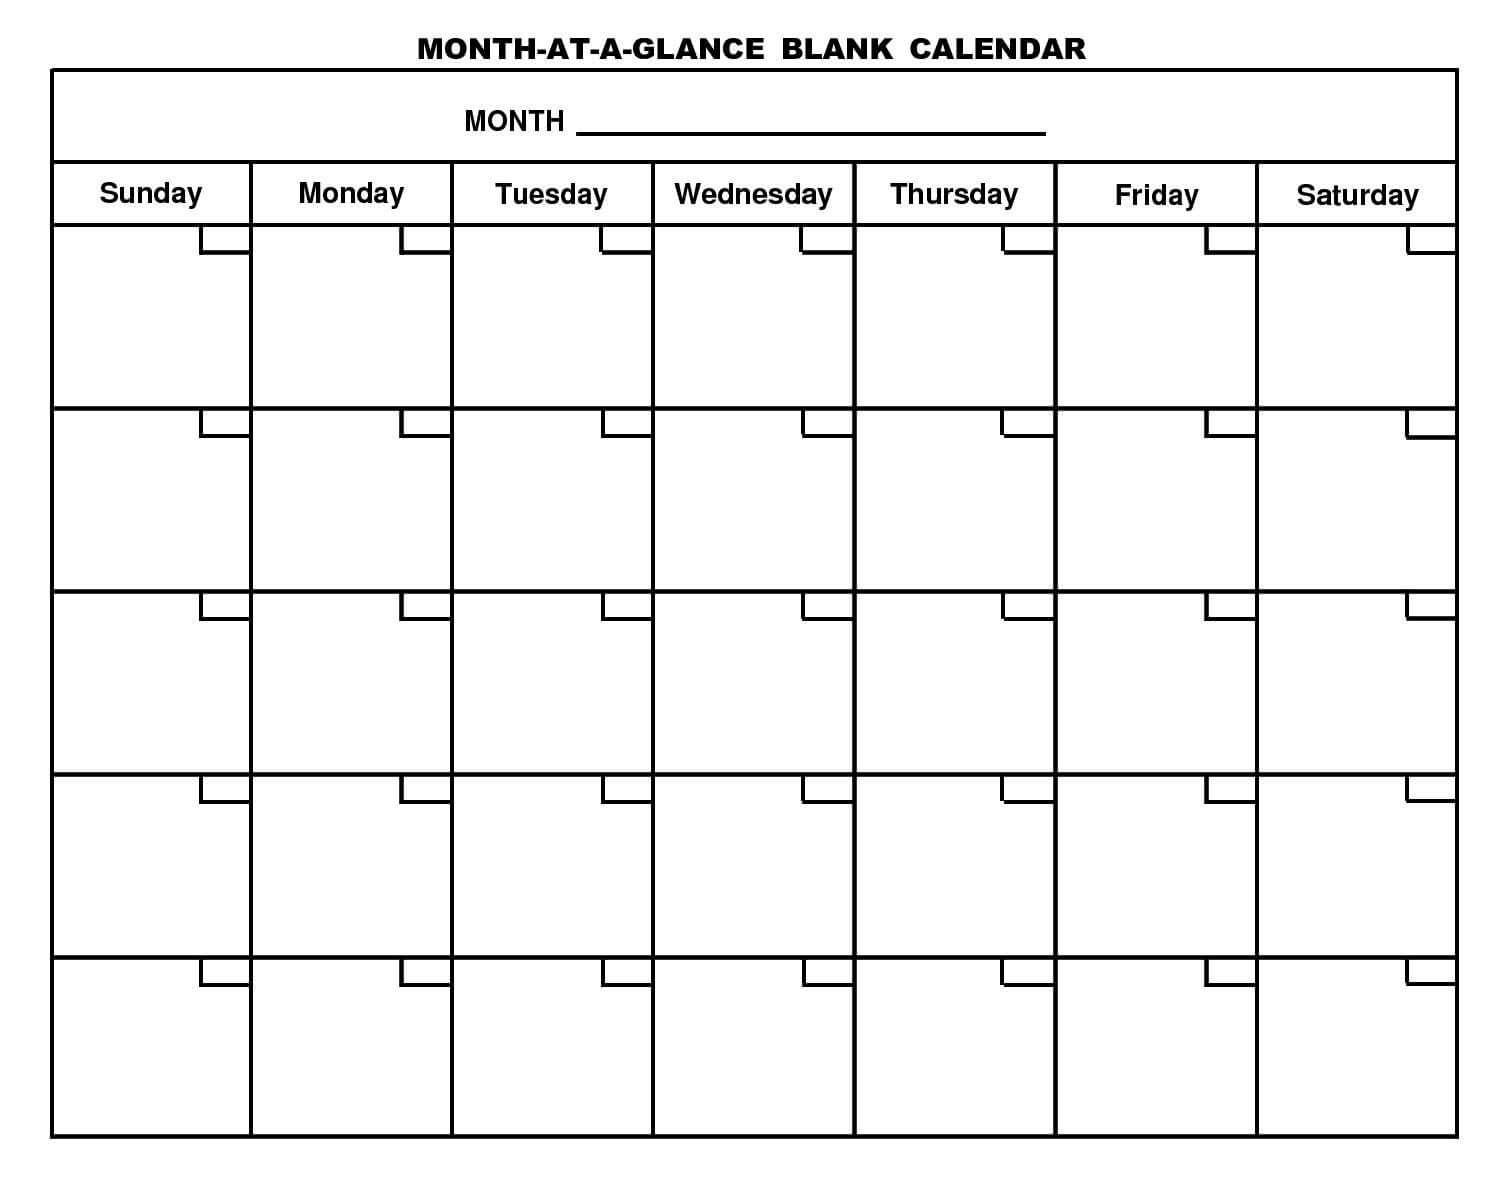 Free Printable Monthly Calendar With Large Boxes Skymaps for Month At A Glance Blank Calendar Template